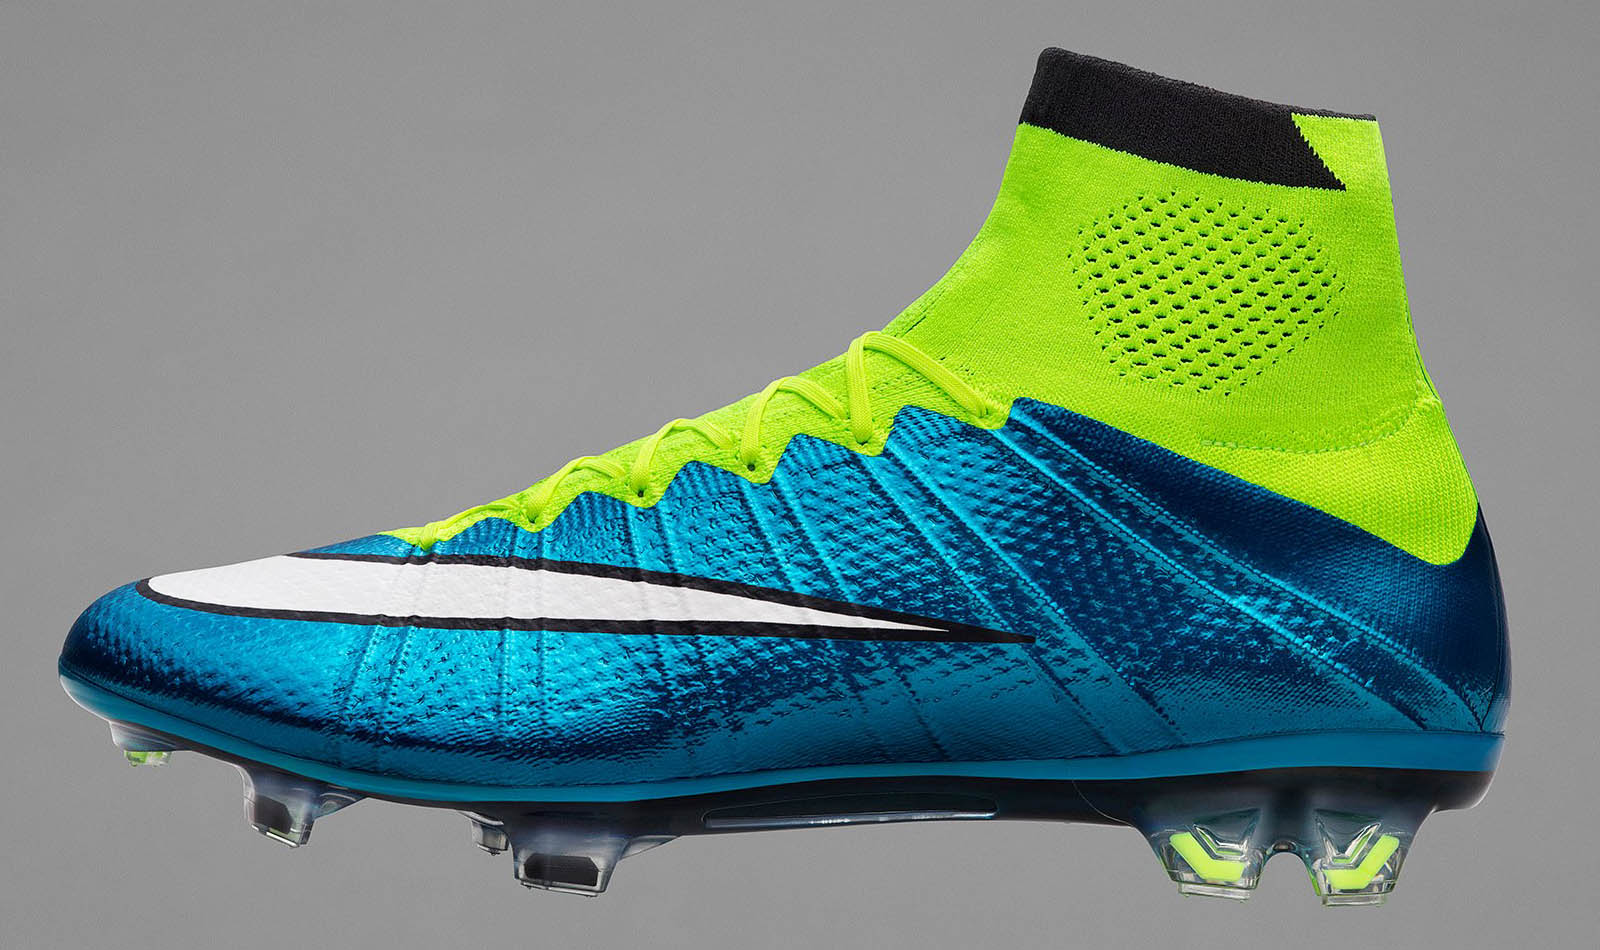 Nike Mercurial Superfly 2015 Women's Cleat - Blue Lagoon / Volt / White